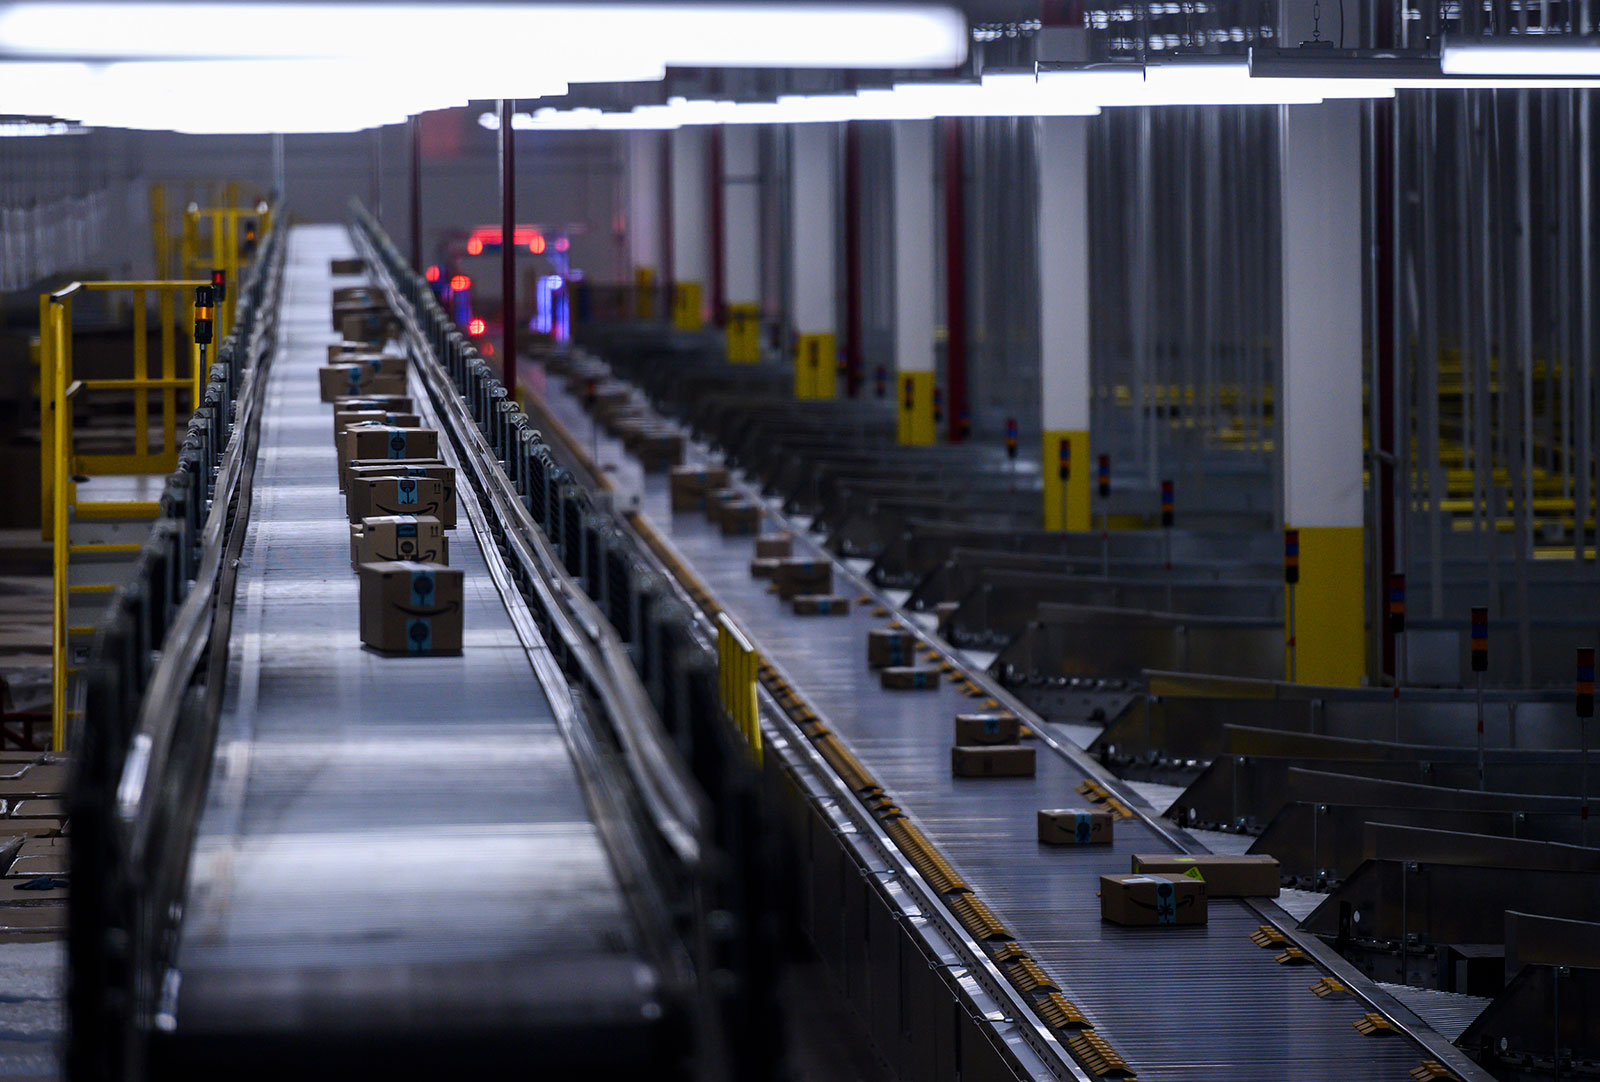 Orders move down a conveyor belt at the Amazon fulfillment center in Staten Island, New York. On Tuesday the company confirmed the death of an employee who worked at the facility.